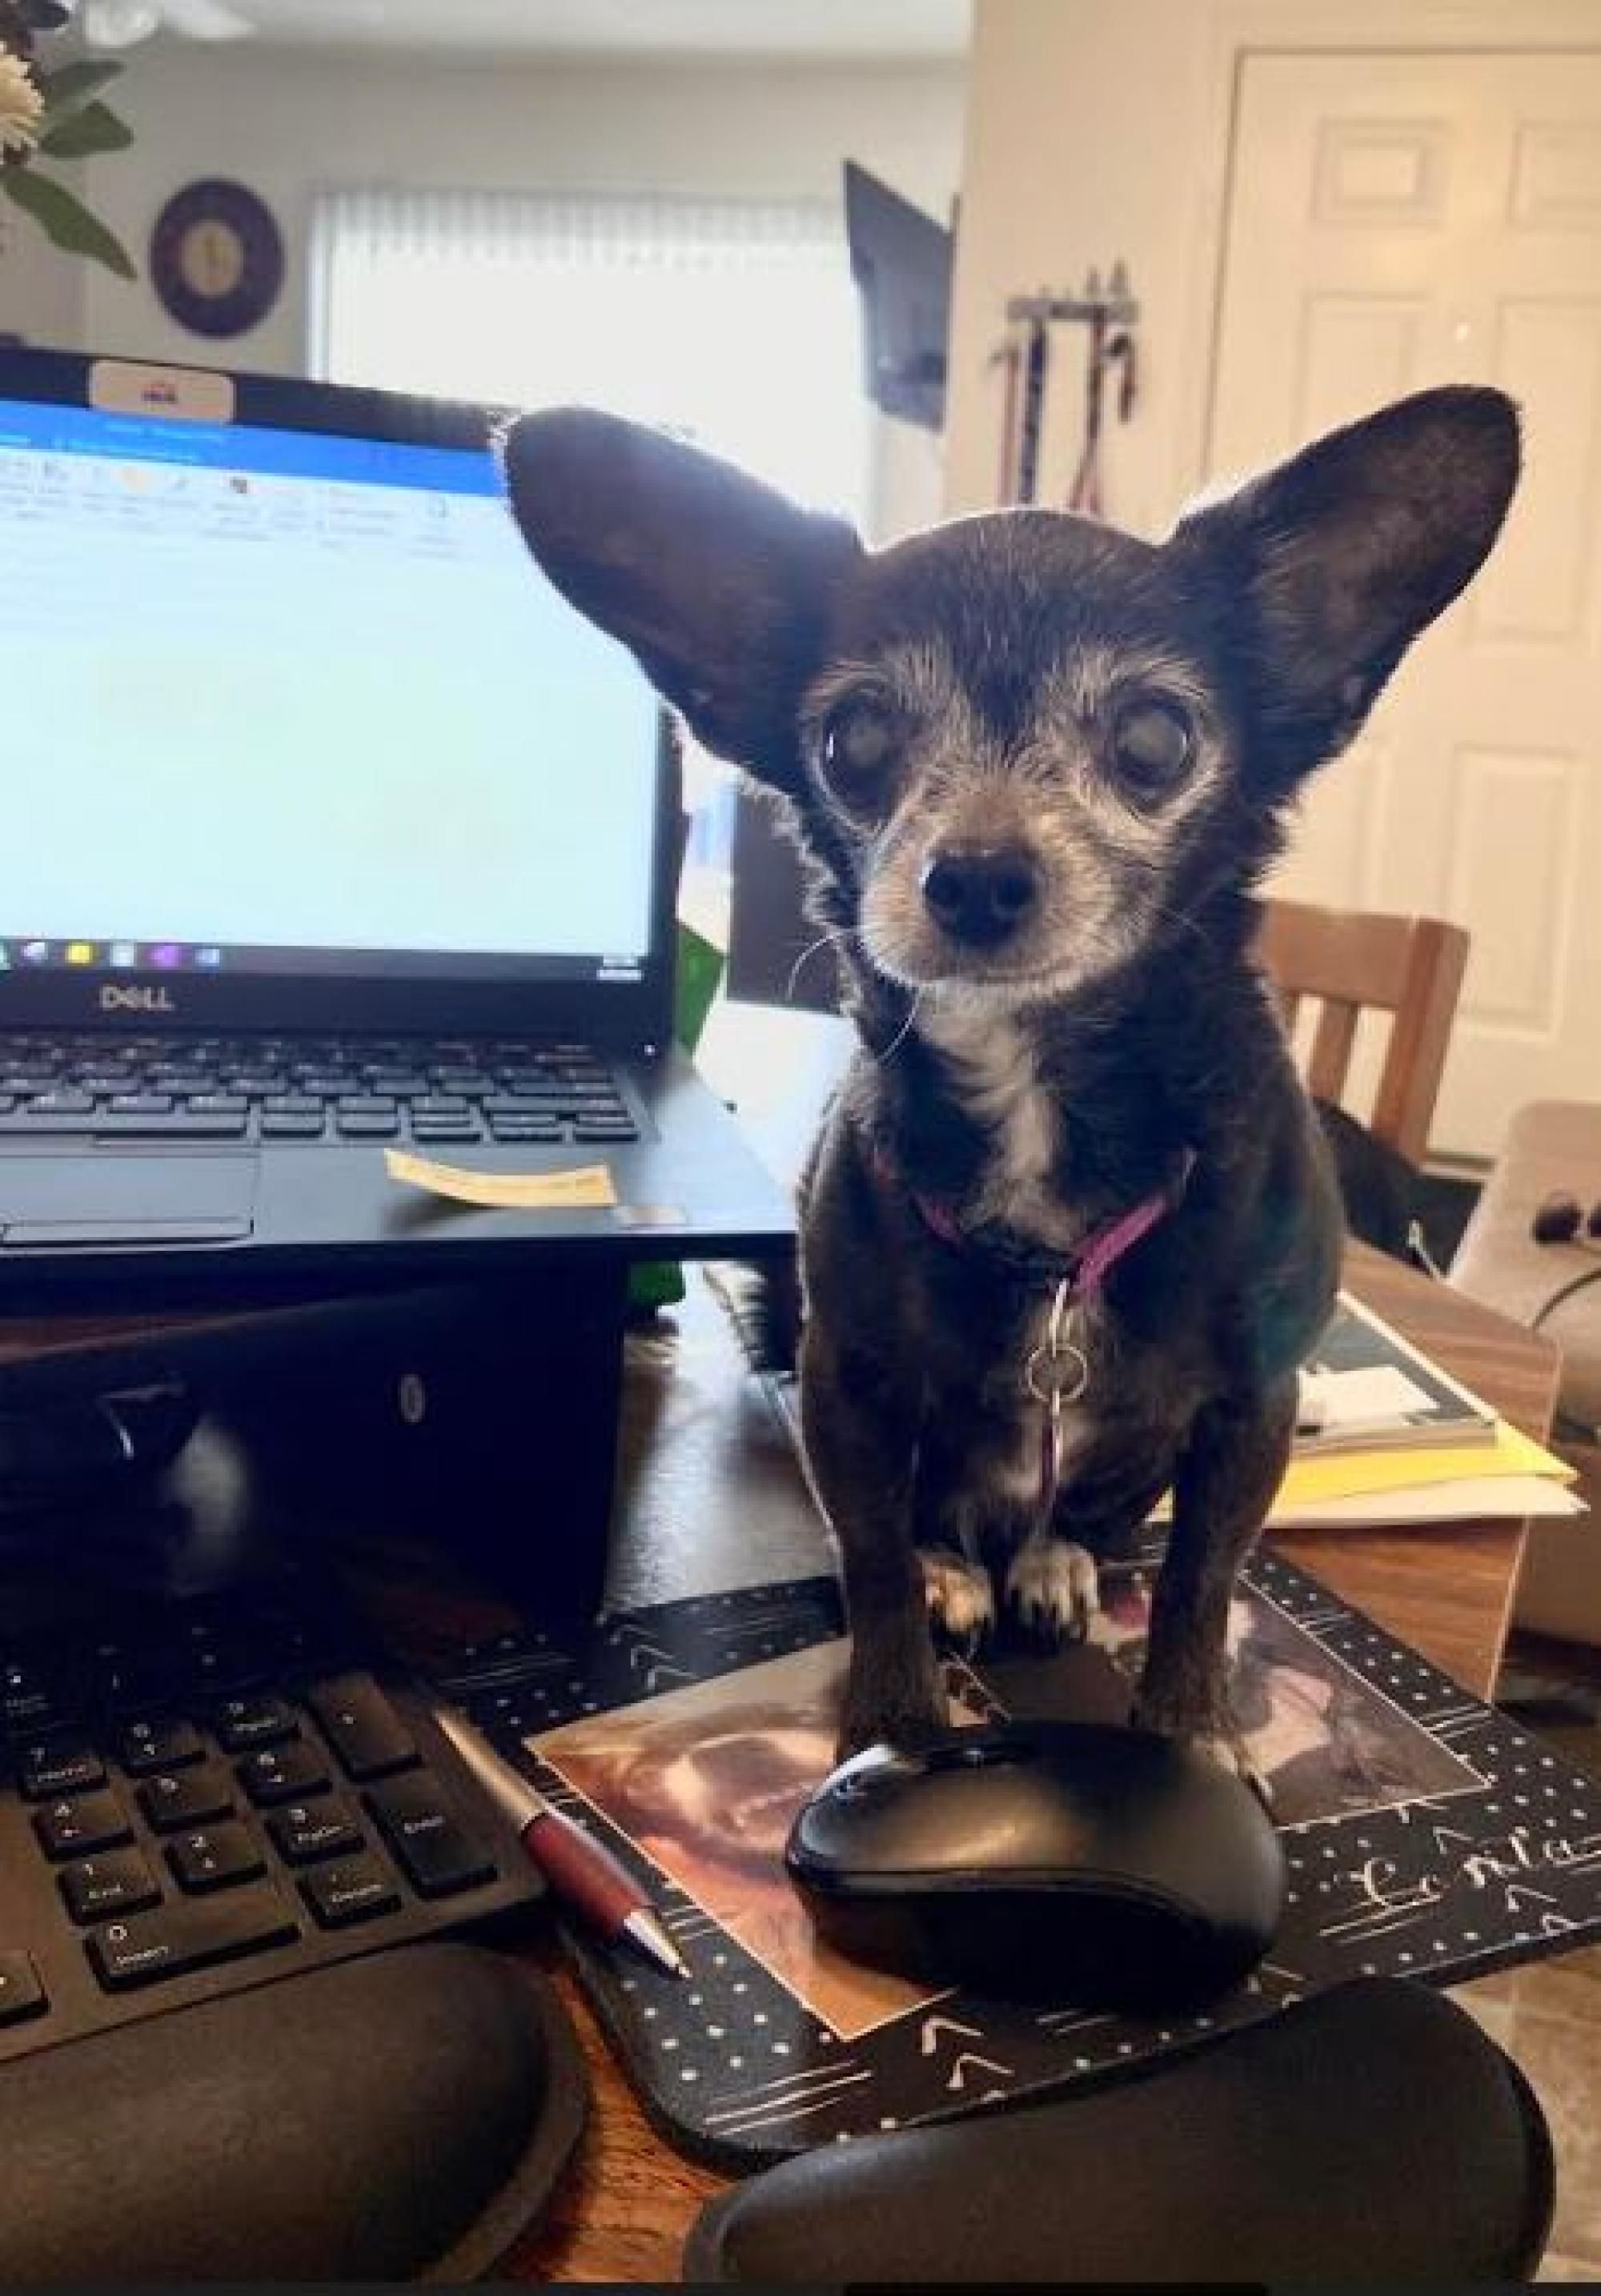 I thought I would share my precious new co-worker. Here is Cosita reporting for duty! The new girl is a bit of a diva – she demands attention and is constantly hiding in a blanket taking a nap. – Amanda Burkey, administrative assistant in the Division of